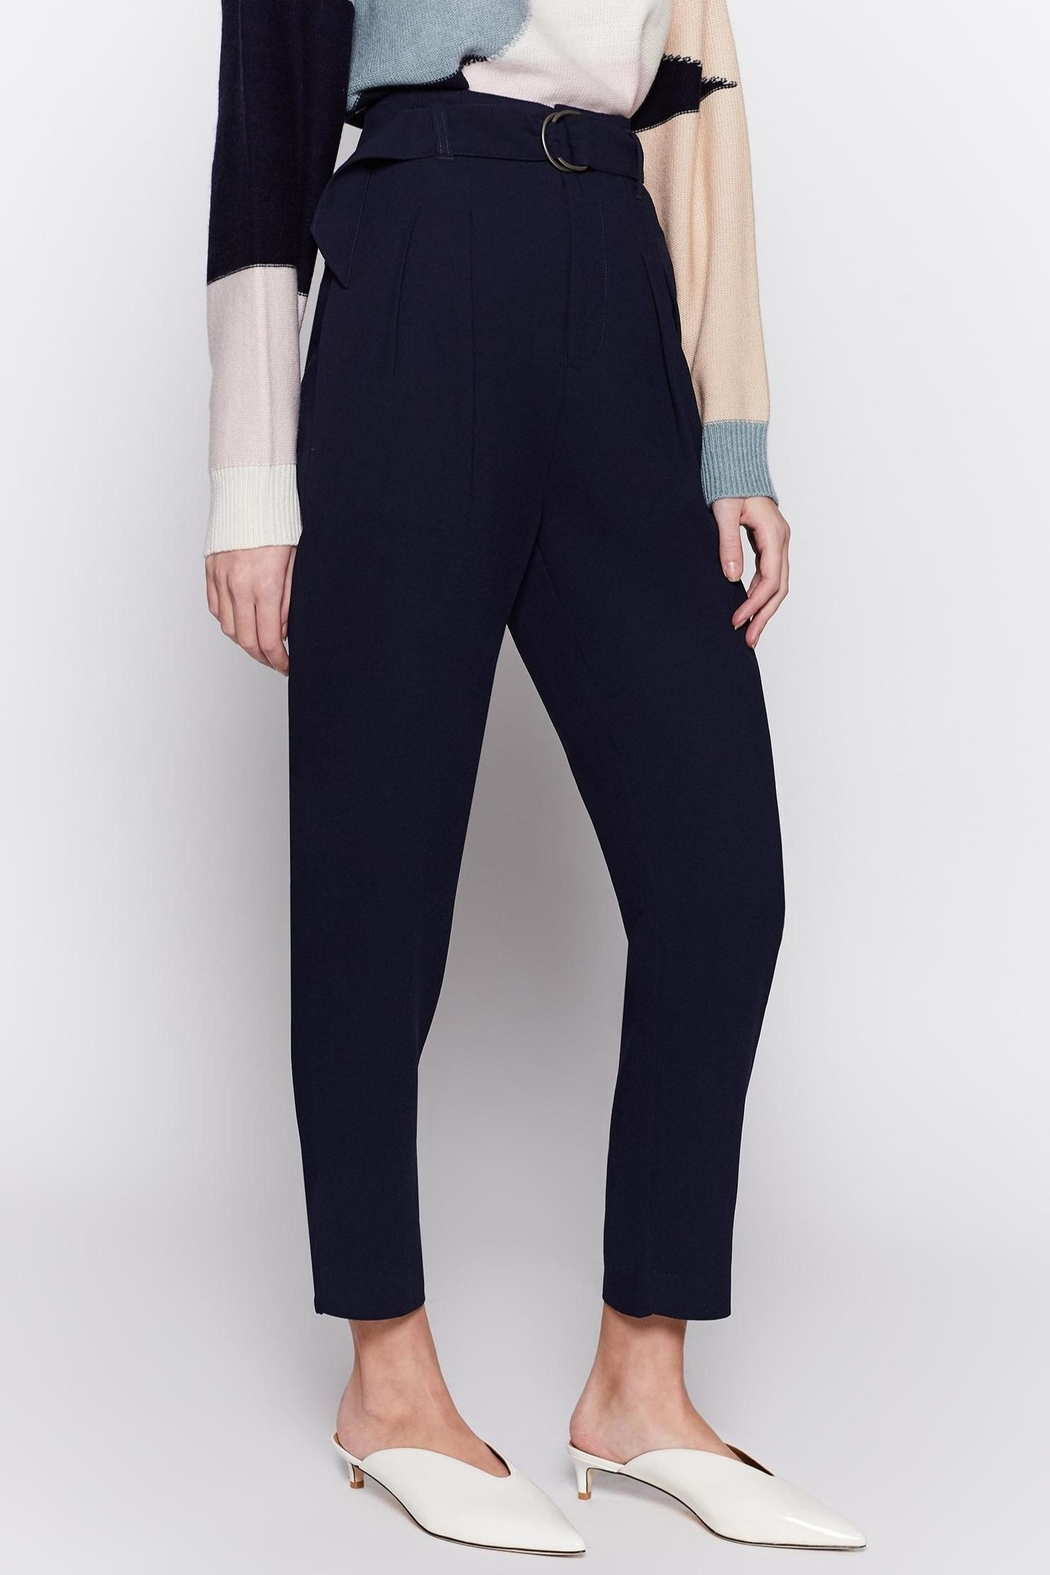 Joie Ianna Pants Midnight - Side Cropped Image